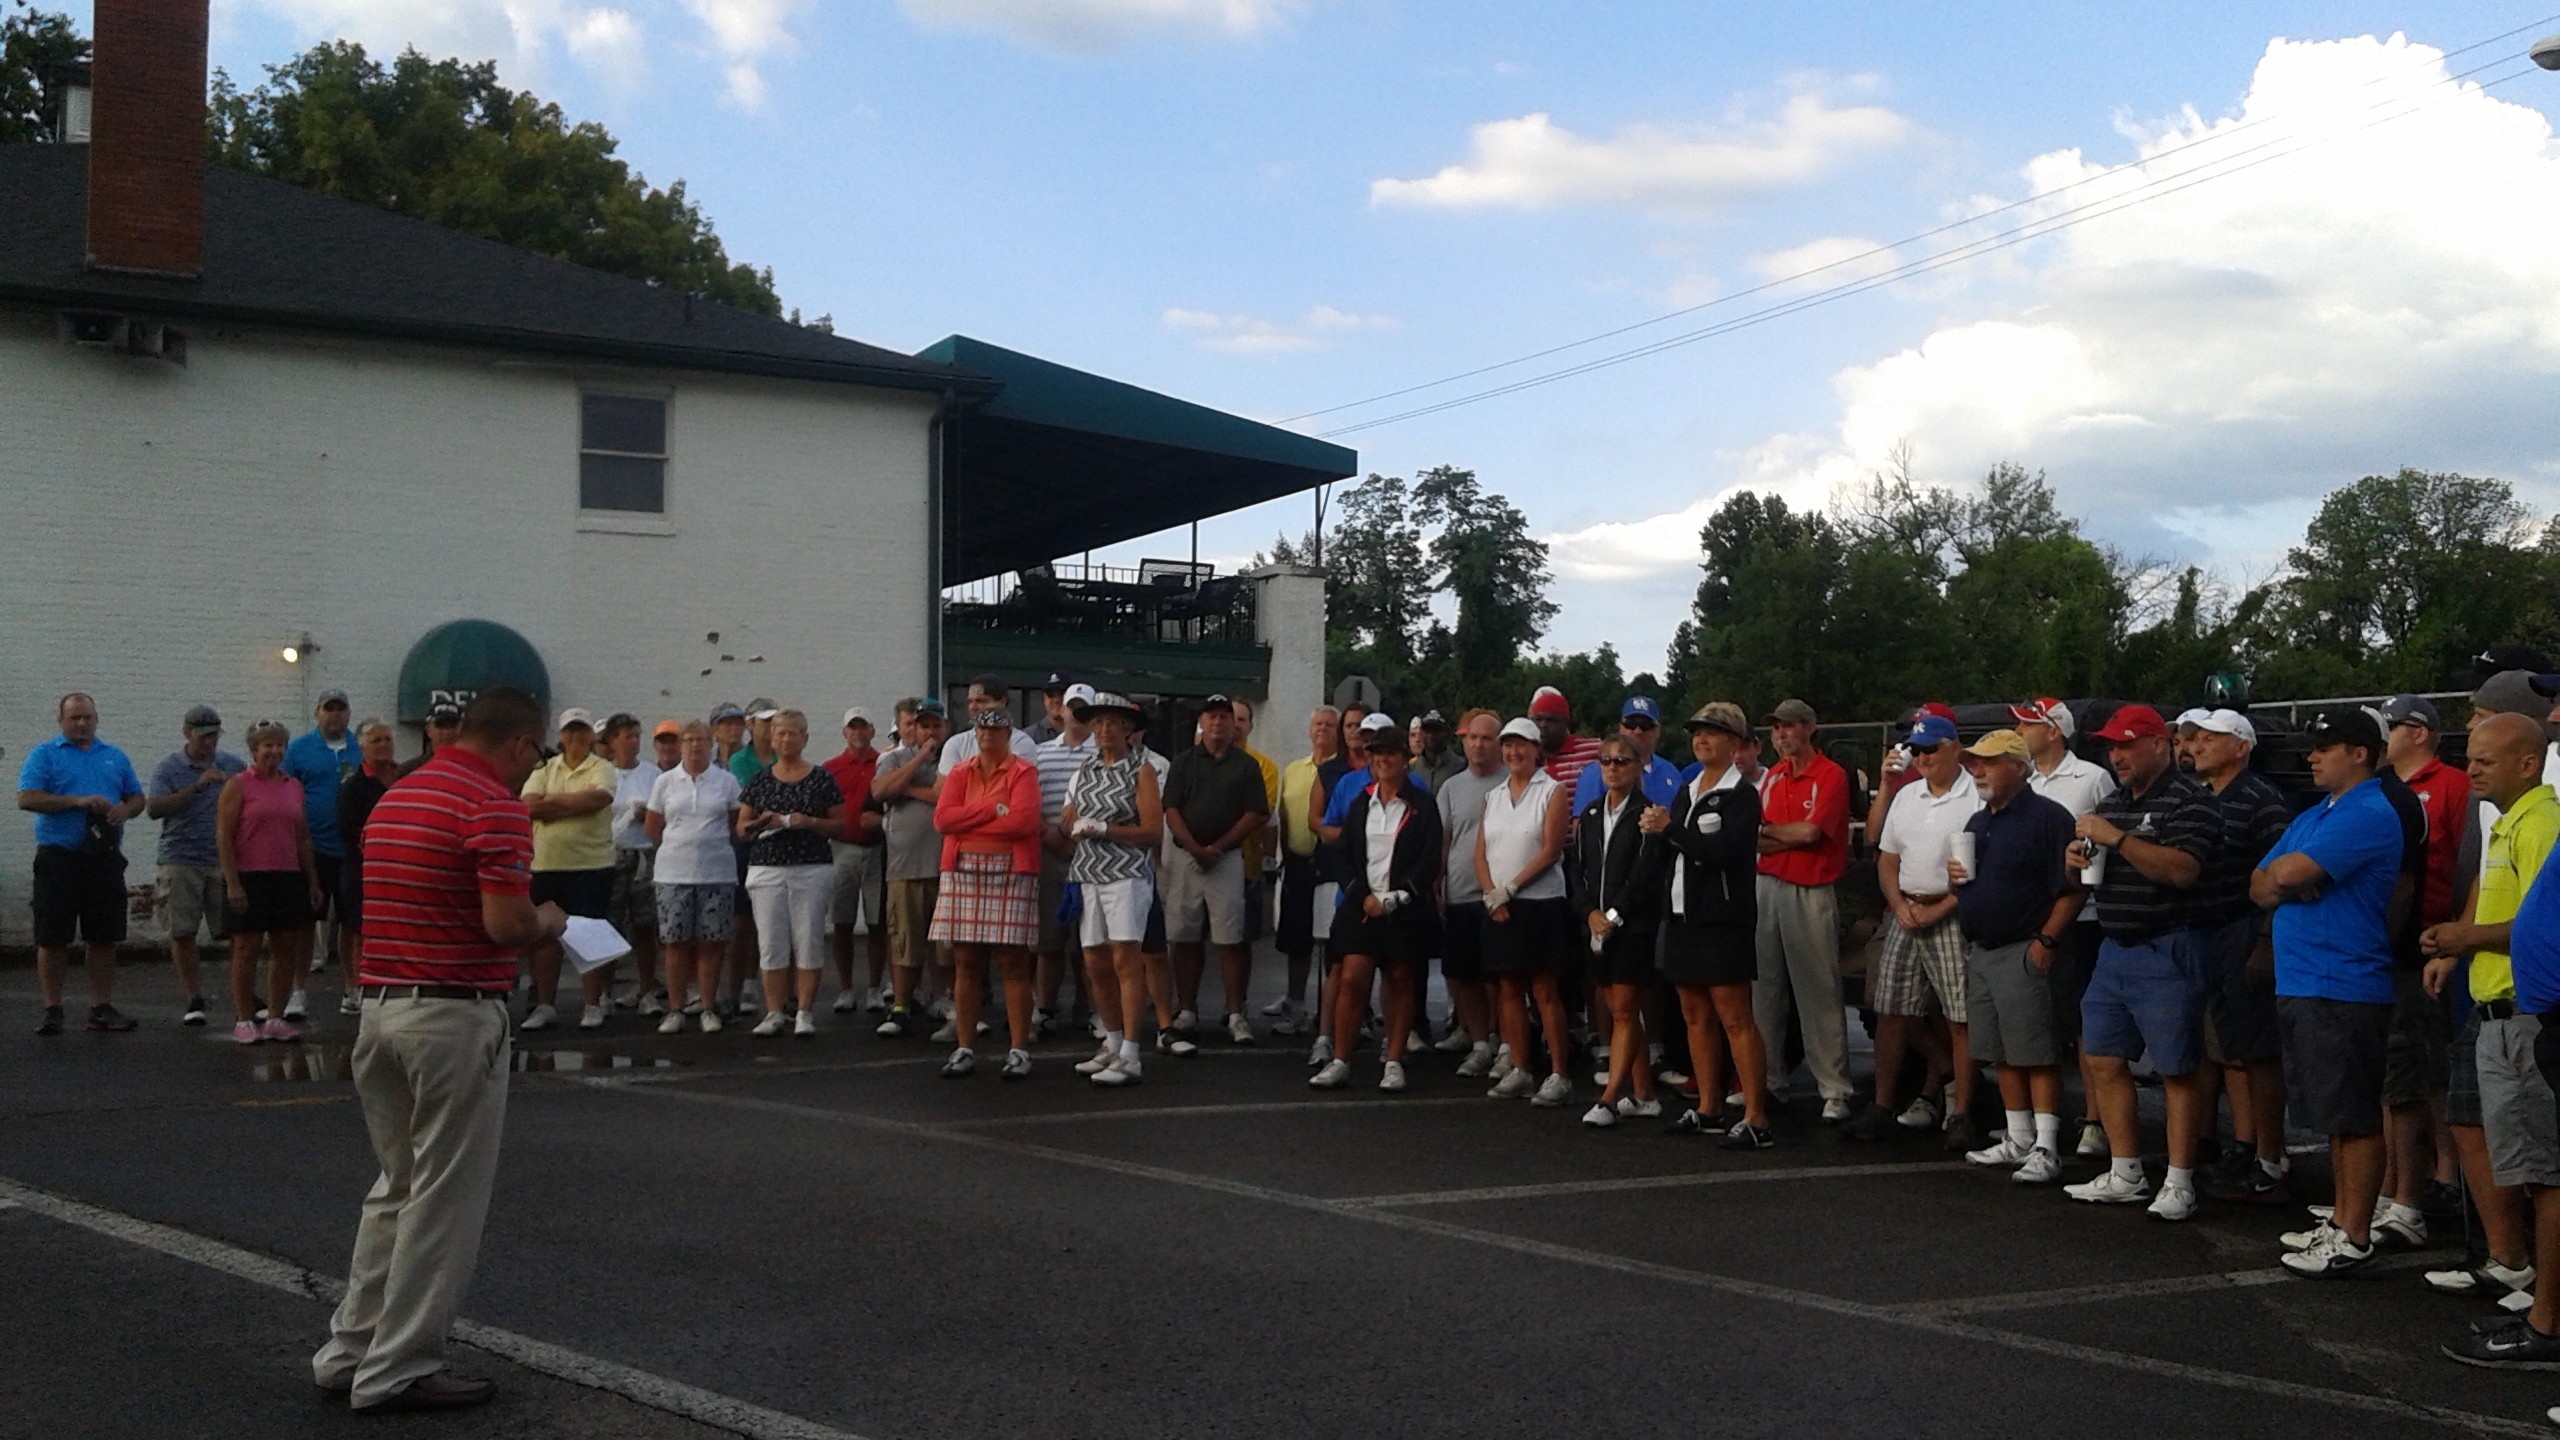 Participants listen to event instructions from Dave Peru  before embarking on this morning's Wounded Warrior fundraising event at Devou Park's golf course. (Photo by Mike Rutledge)